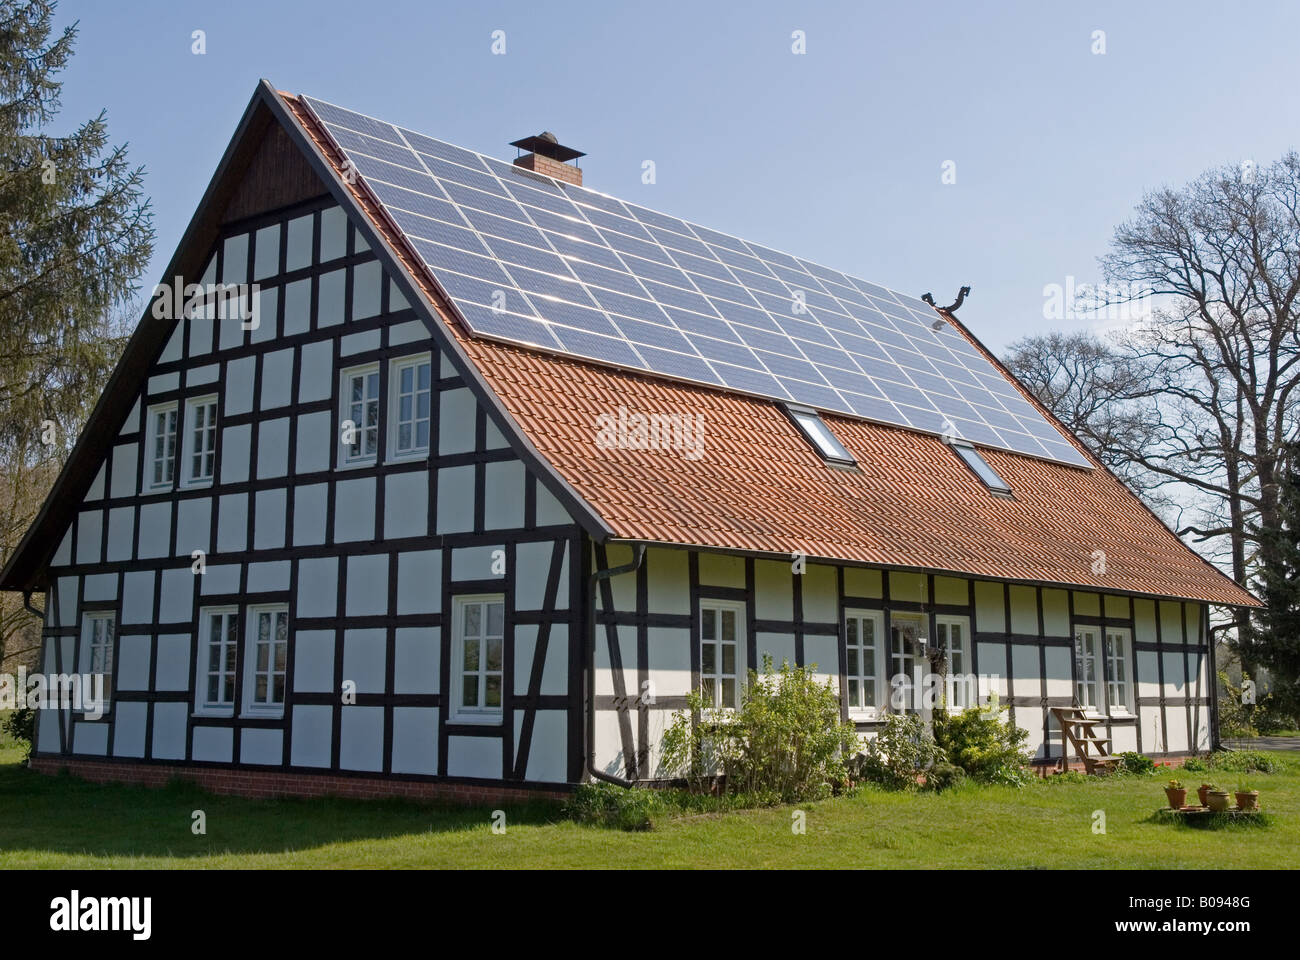 Traditional half-timber framed house with solar panels fitted to the roof, Strohen, Lower Saxony, Germany. - Stock Image